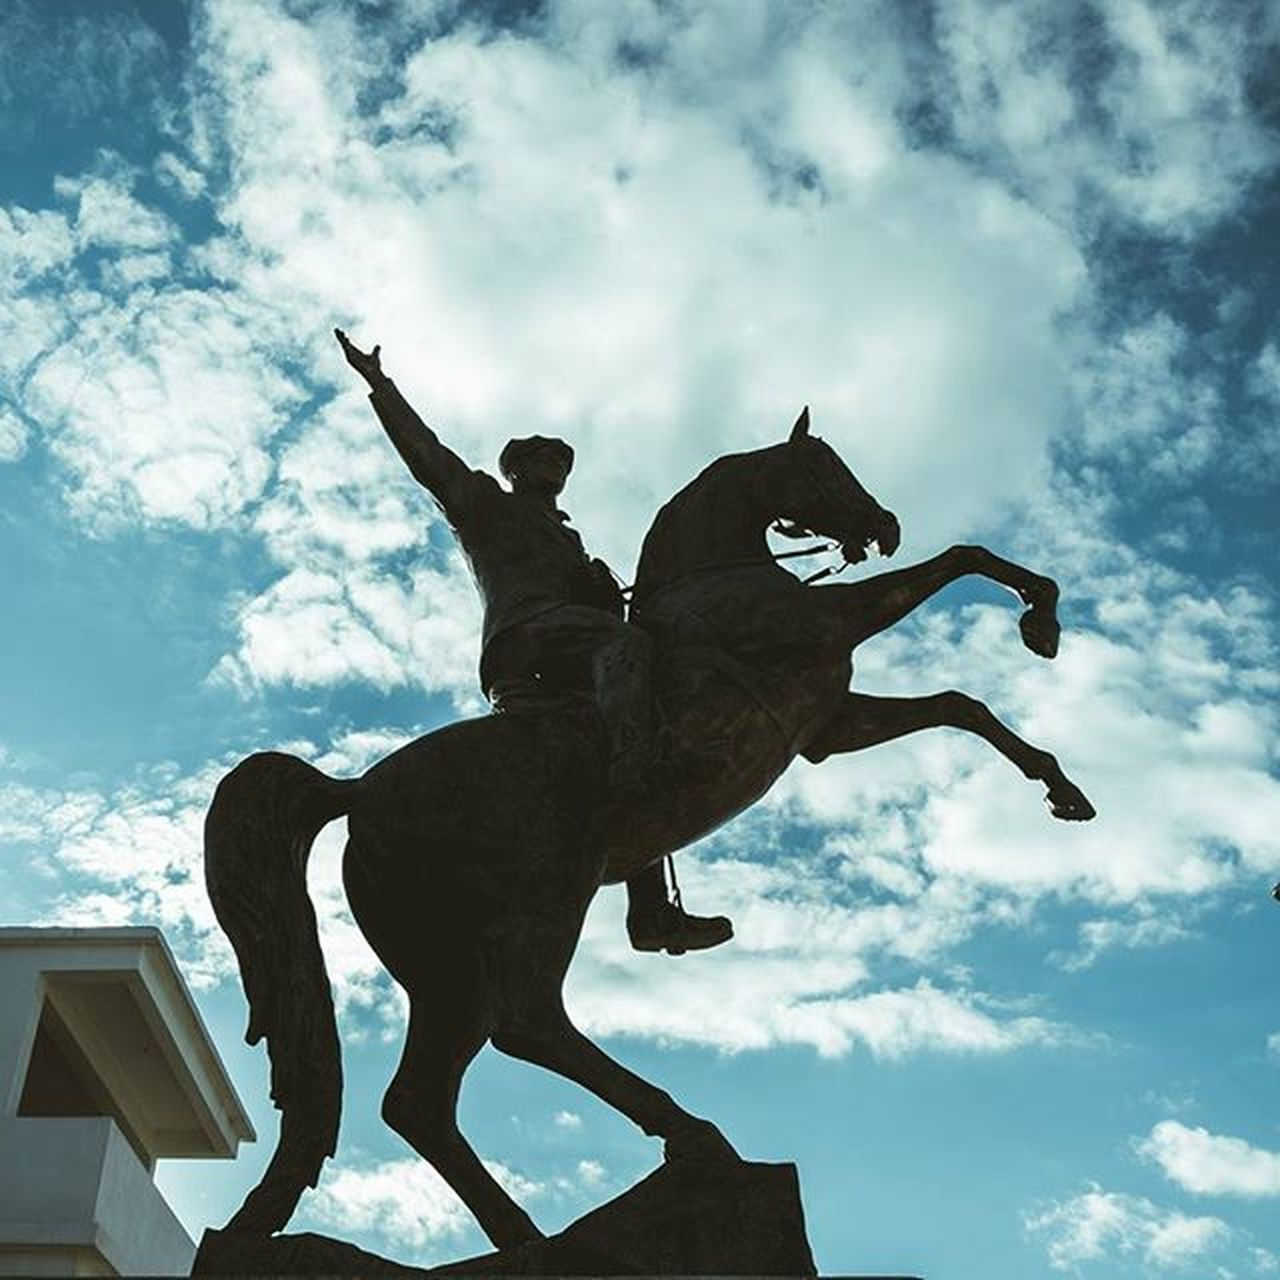 cloud - sky, sky, statue, sculpture, low angle view, art and craft, horse, human representation, day, outdoors, silhouette, architecture, building exterior, no people